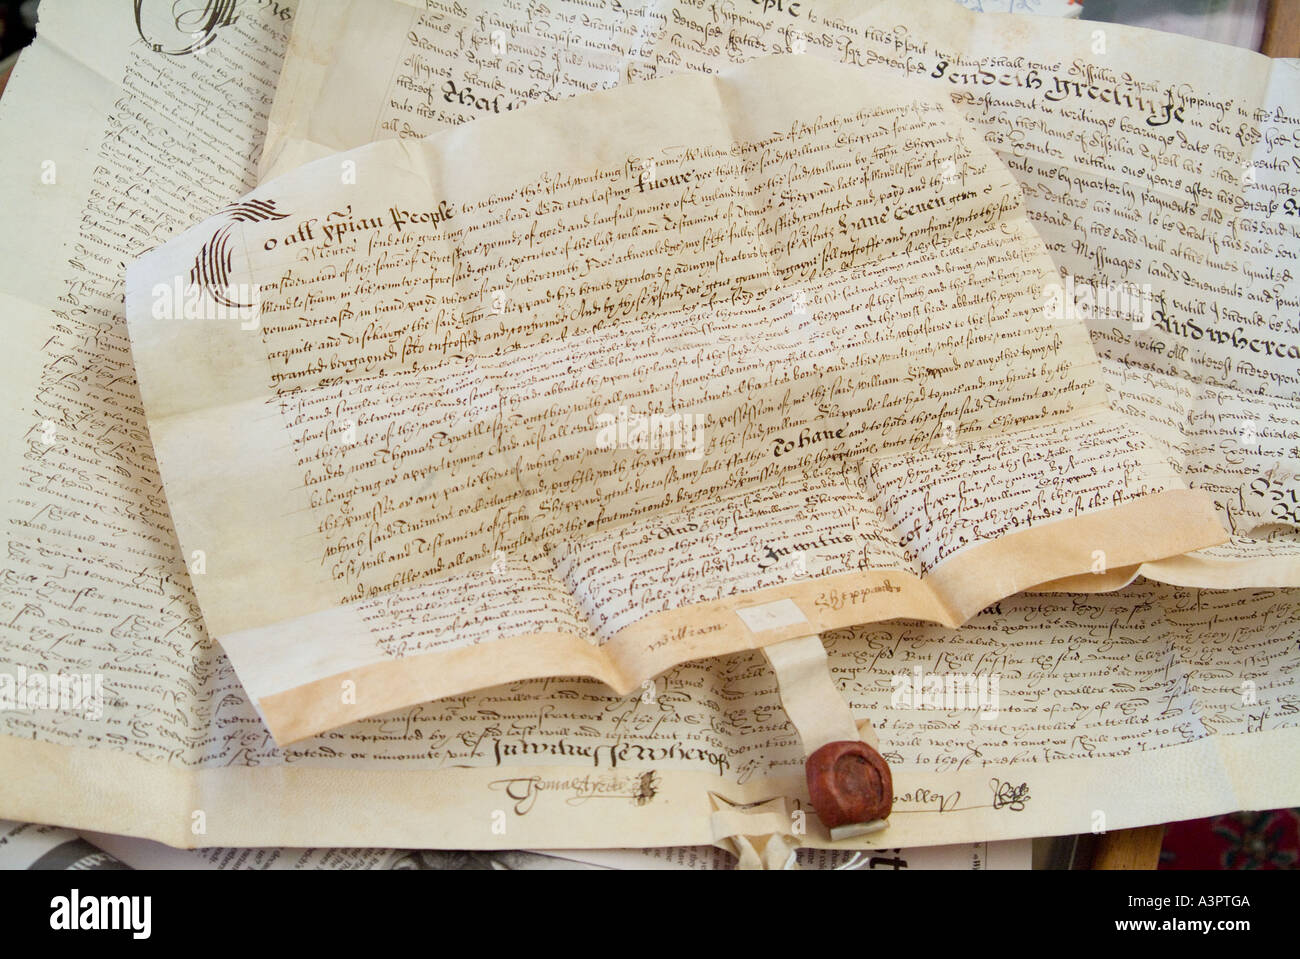 An old English will from the time of King Charles the first